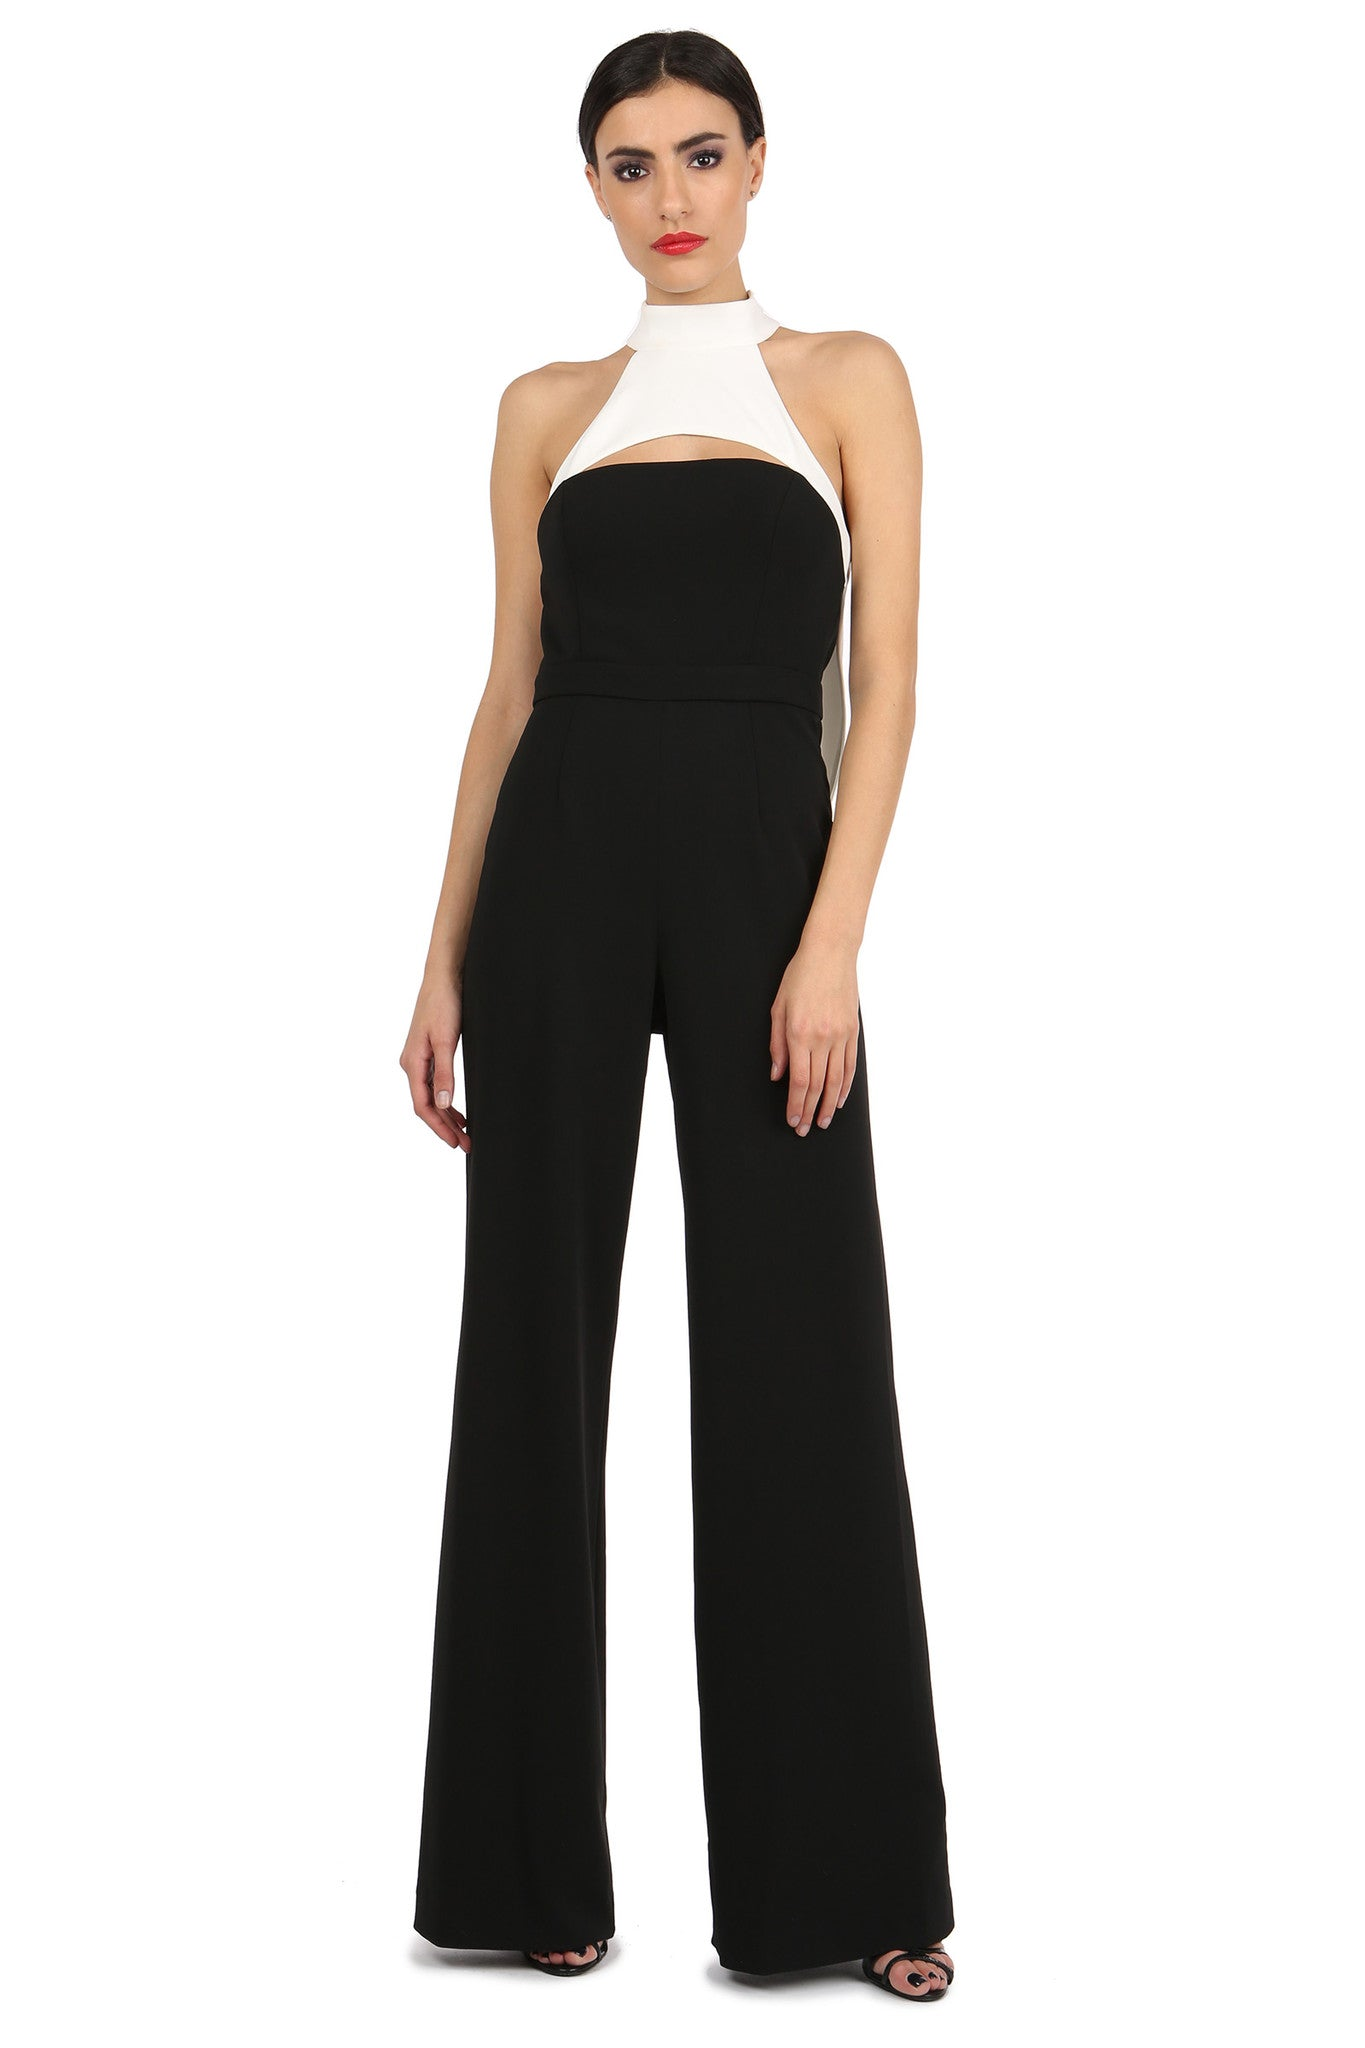 Jay Godfrey Black and White High-Neck Jumpsuit - Front View